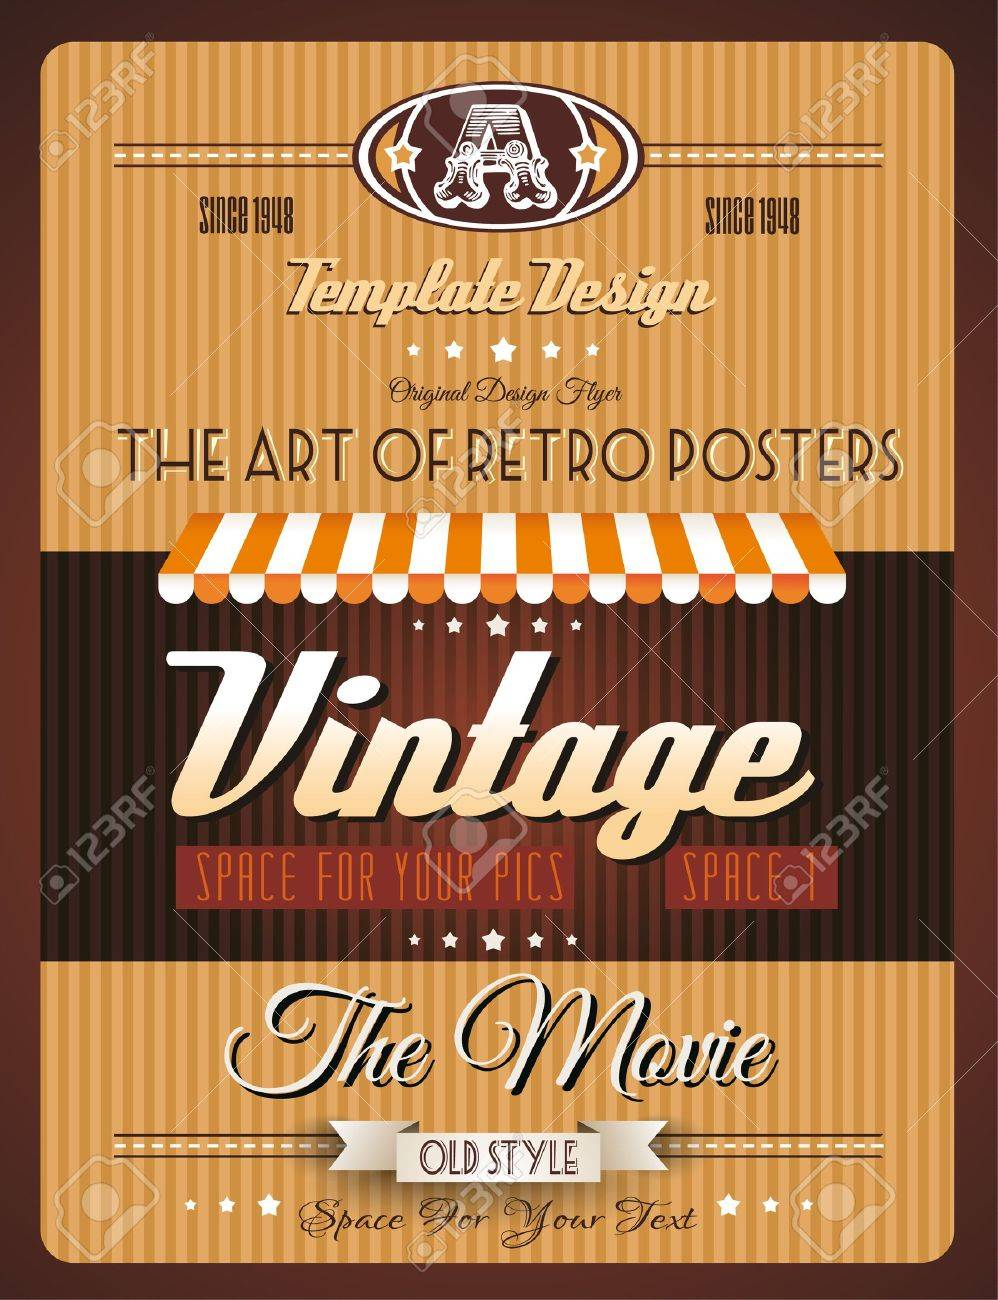 Vintage retro page template for a variety of purposes: website home page, old style flyers, book covers or vintage posters. Stock Vector - 19335852